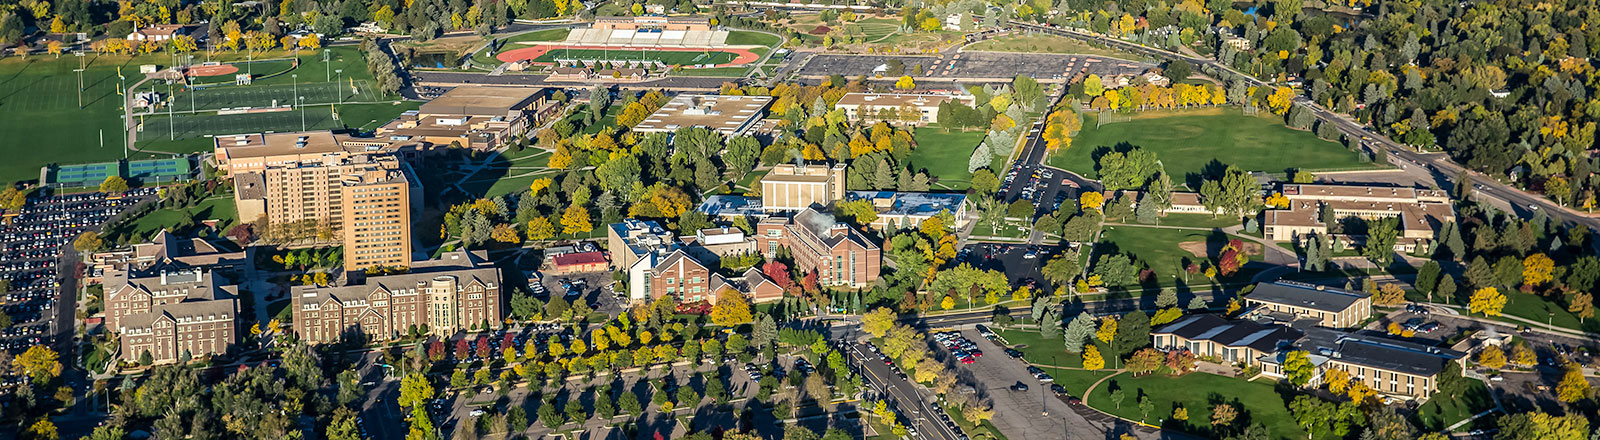 Campus shot from the air